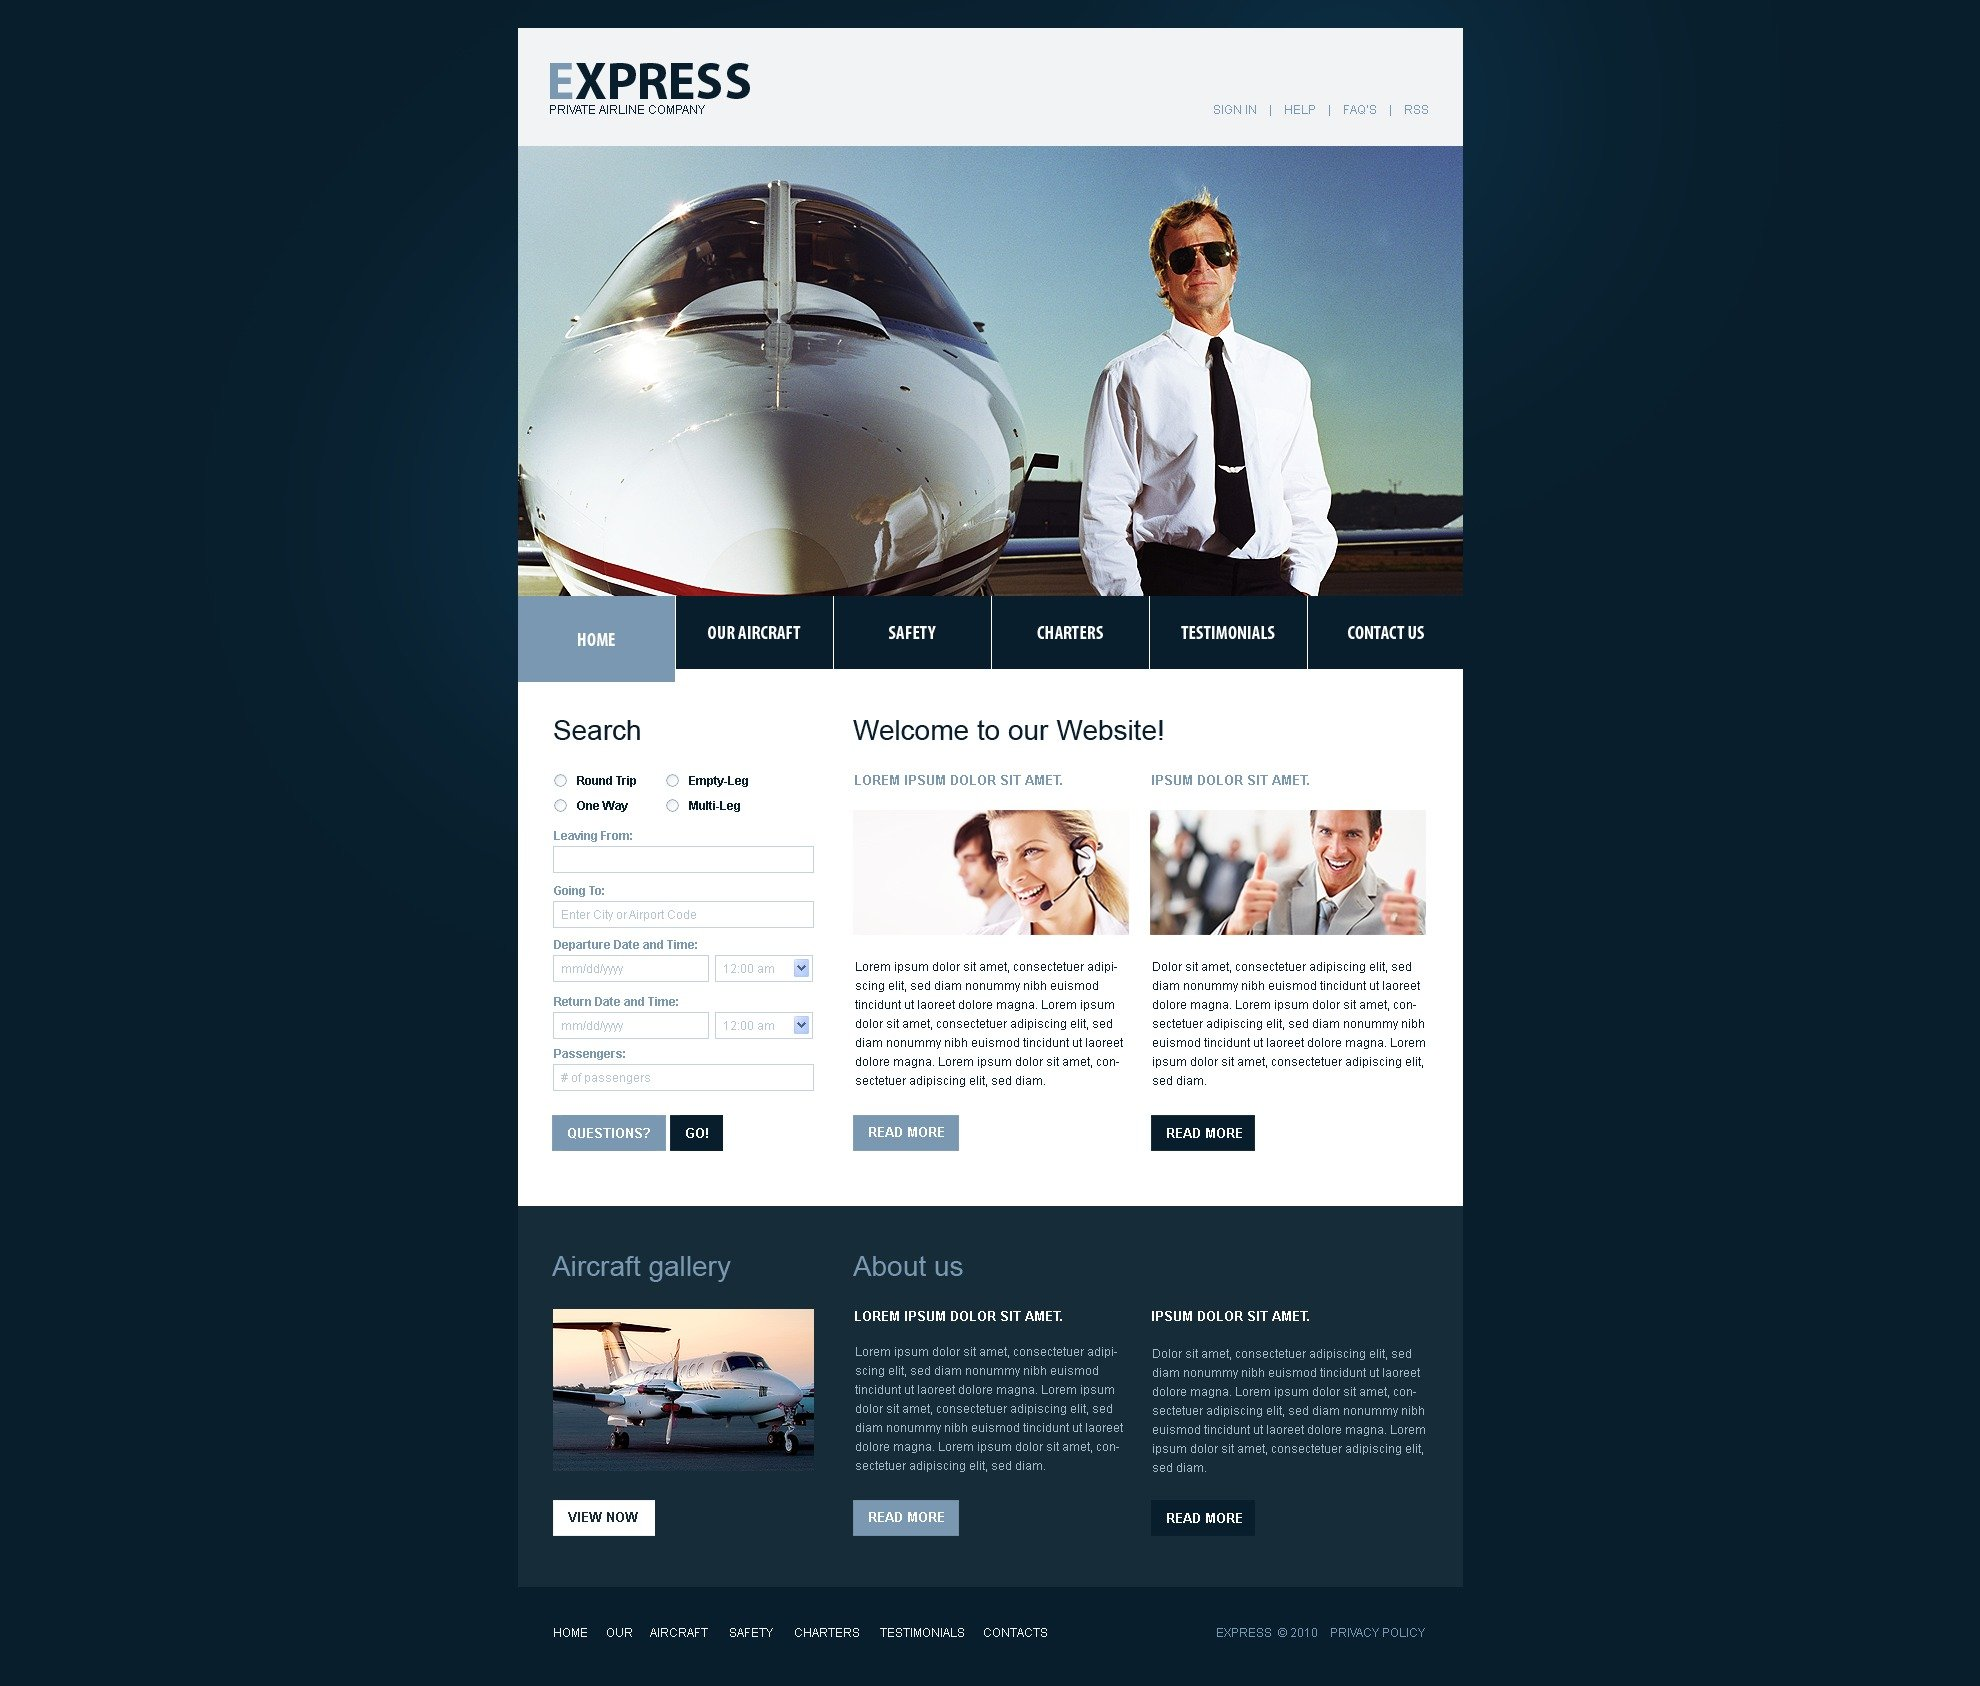 The Express Private Airlines PSD Design 54084, one of the best PSD templates of its kind (travel, transportation, flash 8, wide), also known as express private airlines PSD template, airport company PSD template, flight hotels PSD template, car PSD template, citybreaks PSD template, country PSD template, departure PSD template, destination PSD template, airport PSD template, returning PSD template, plan PSD template, booking PSD template, ticket PSD template, arrival PSD template, reservation PSD template, travel PSD template, vacation PSD template, stewardess PSD template, offers PSD template, tours PSD template, resort PSD template, location PSD template, authorization PSD template, guide PSD template, visa PSD template, discount PSD template, liner PSD template, t and related with express private airlines, airport company, flight hotels, car, citybreaks, country, departure, destination, airport, returning, plan, booking, ticket, arrival, reservation, travel, vacation, stewardess, offers, tours, resort, location, authorization, guide, visa, discount, liner, t, etc.